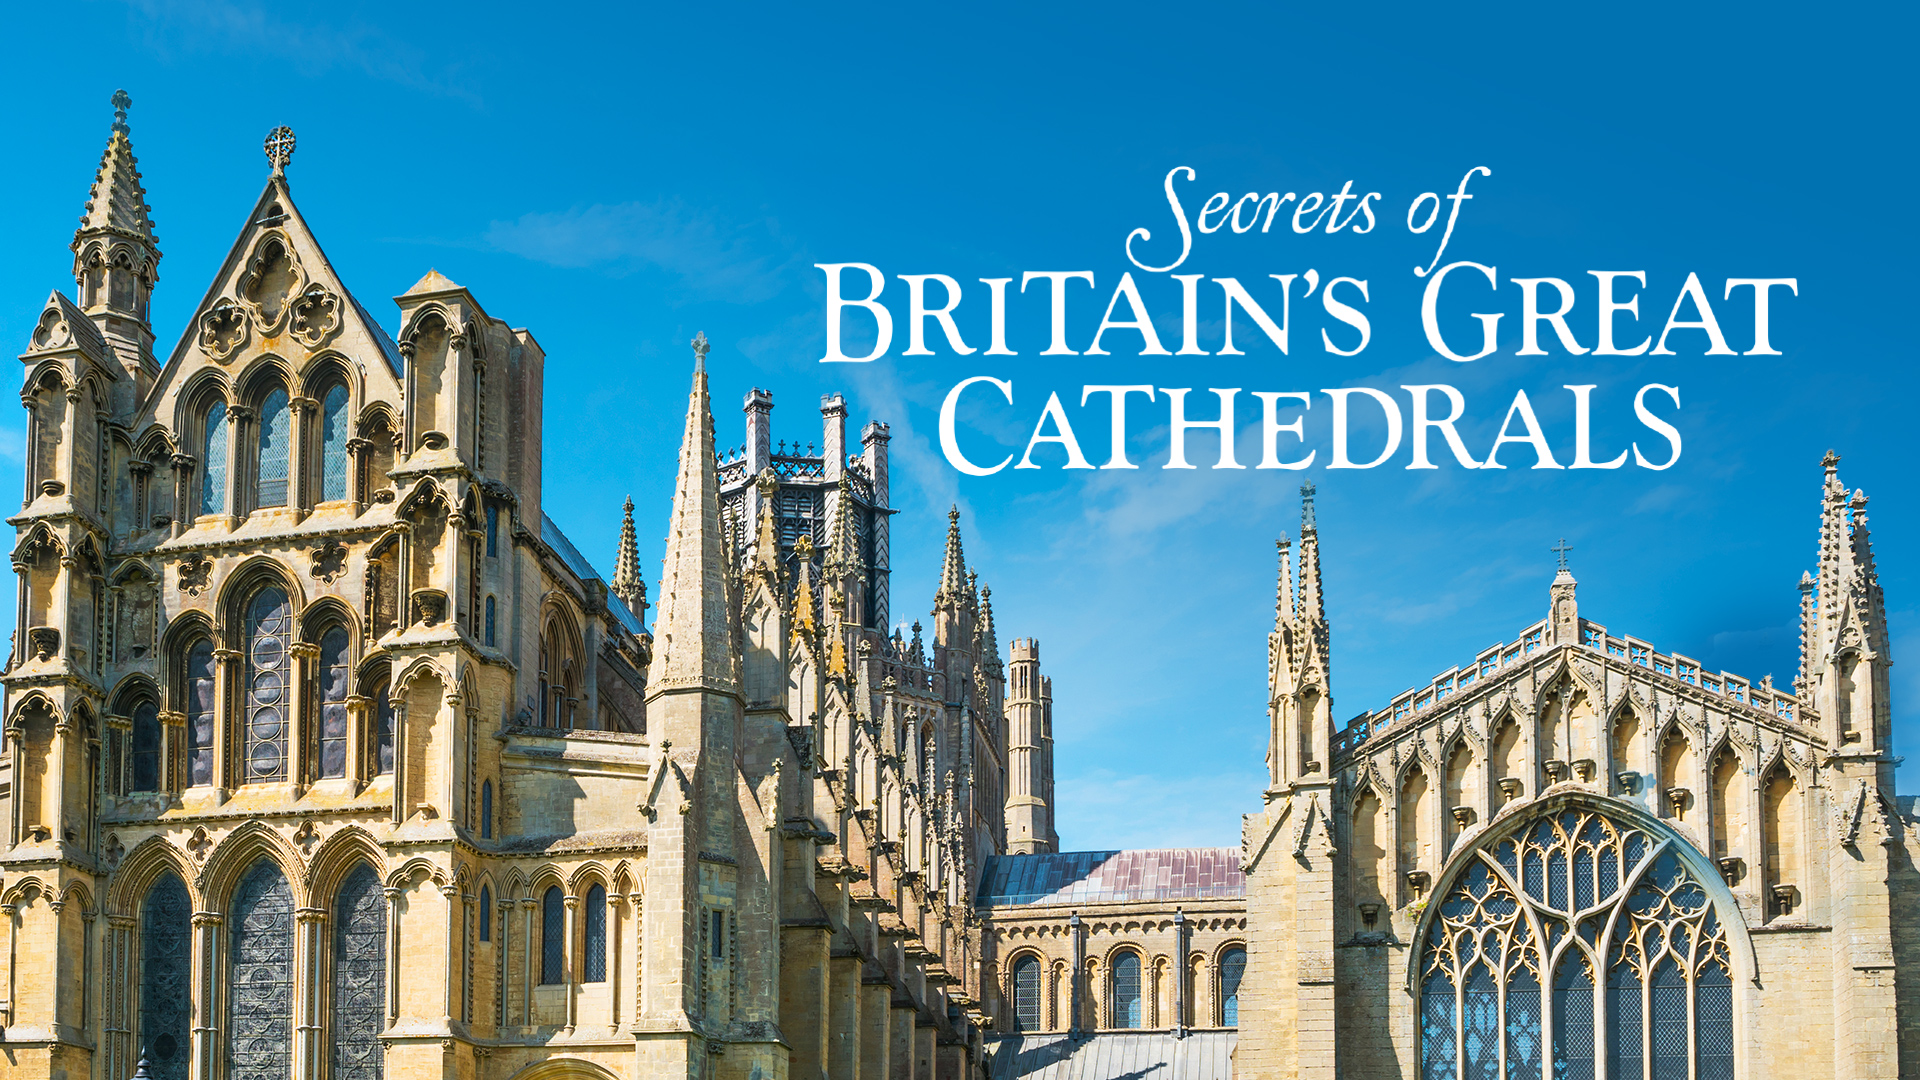 Secrets of Britain's Great Cathedrals: Season 1